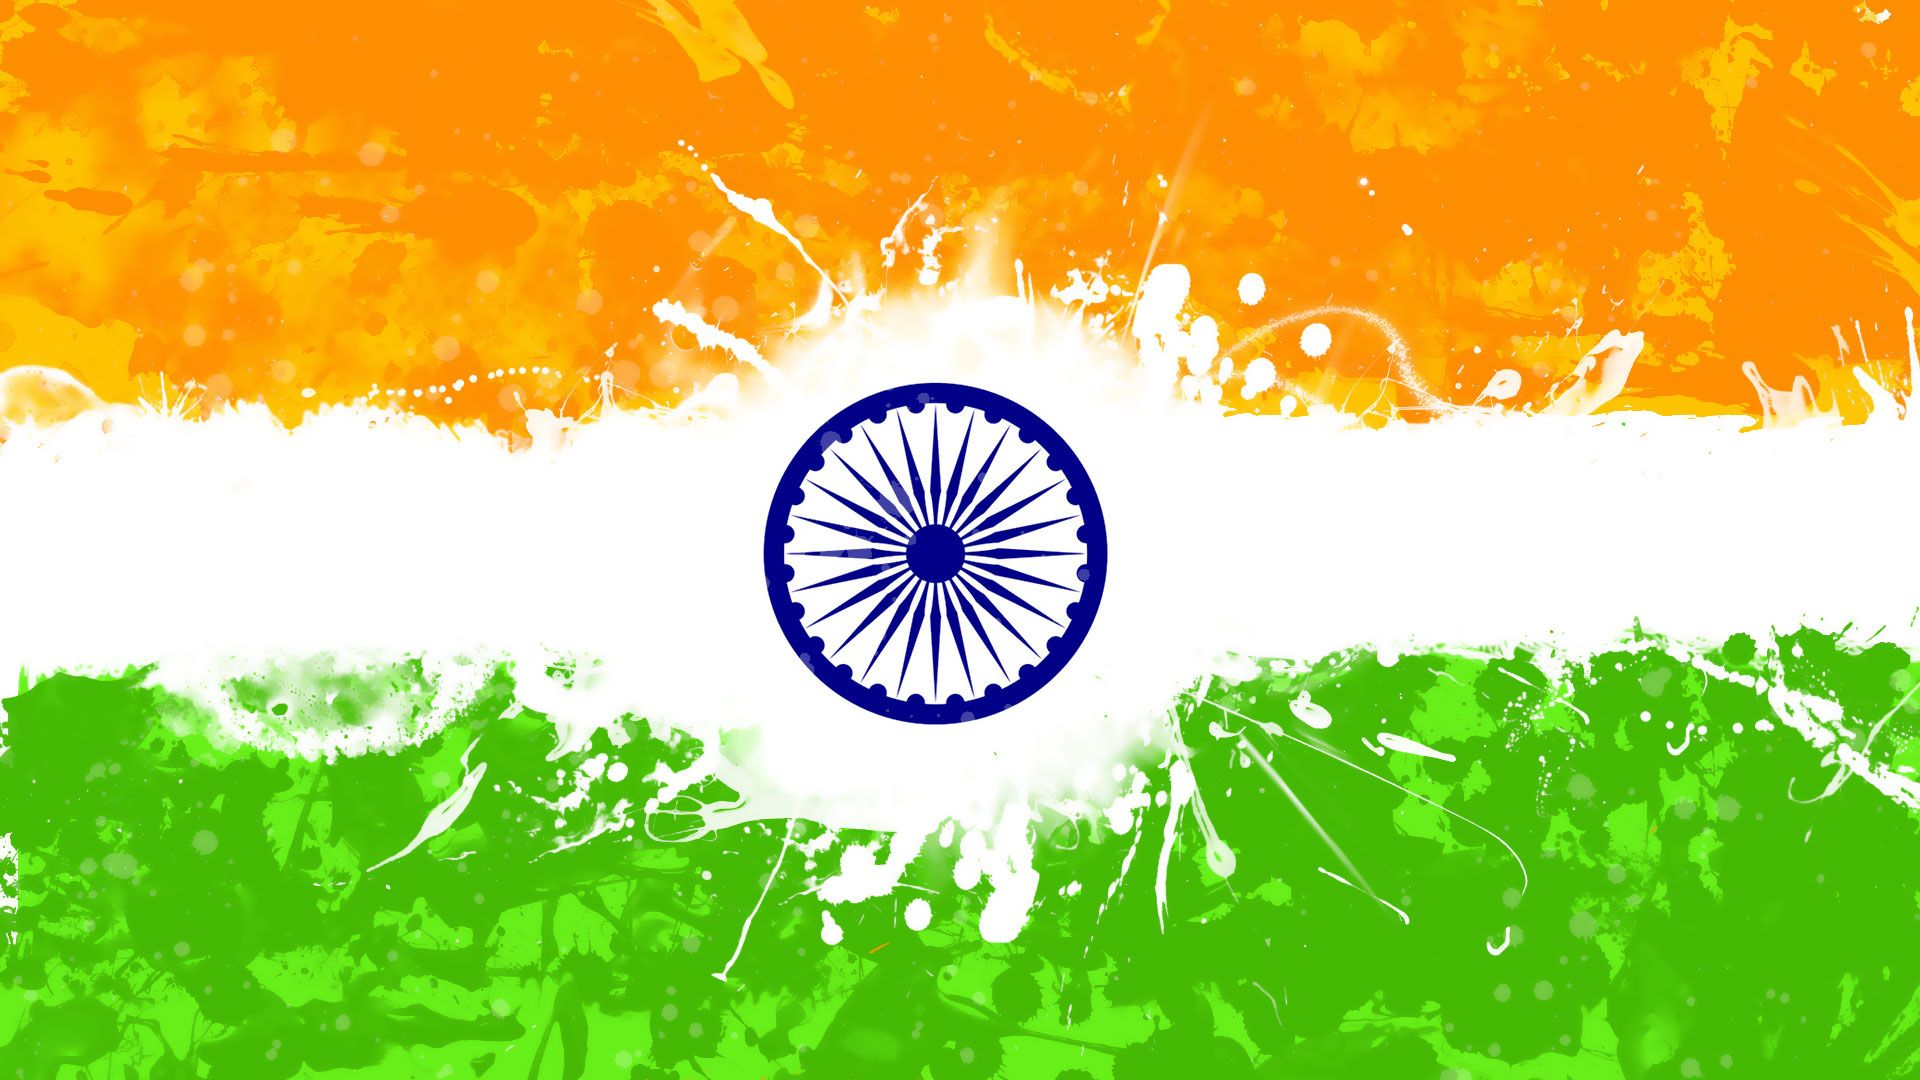 Wallpaper download india - Indian Flag Wallpapers Images